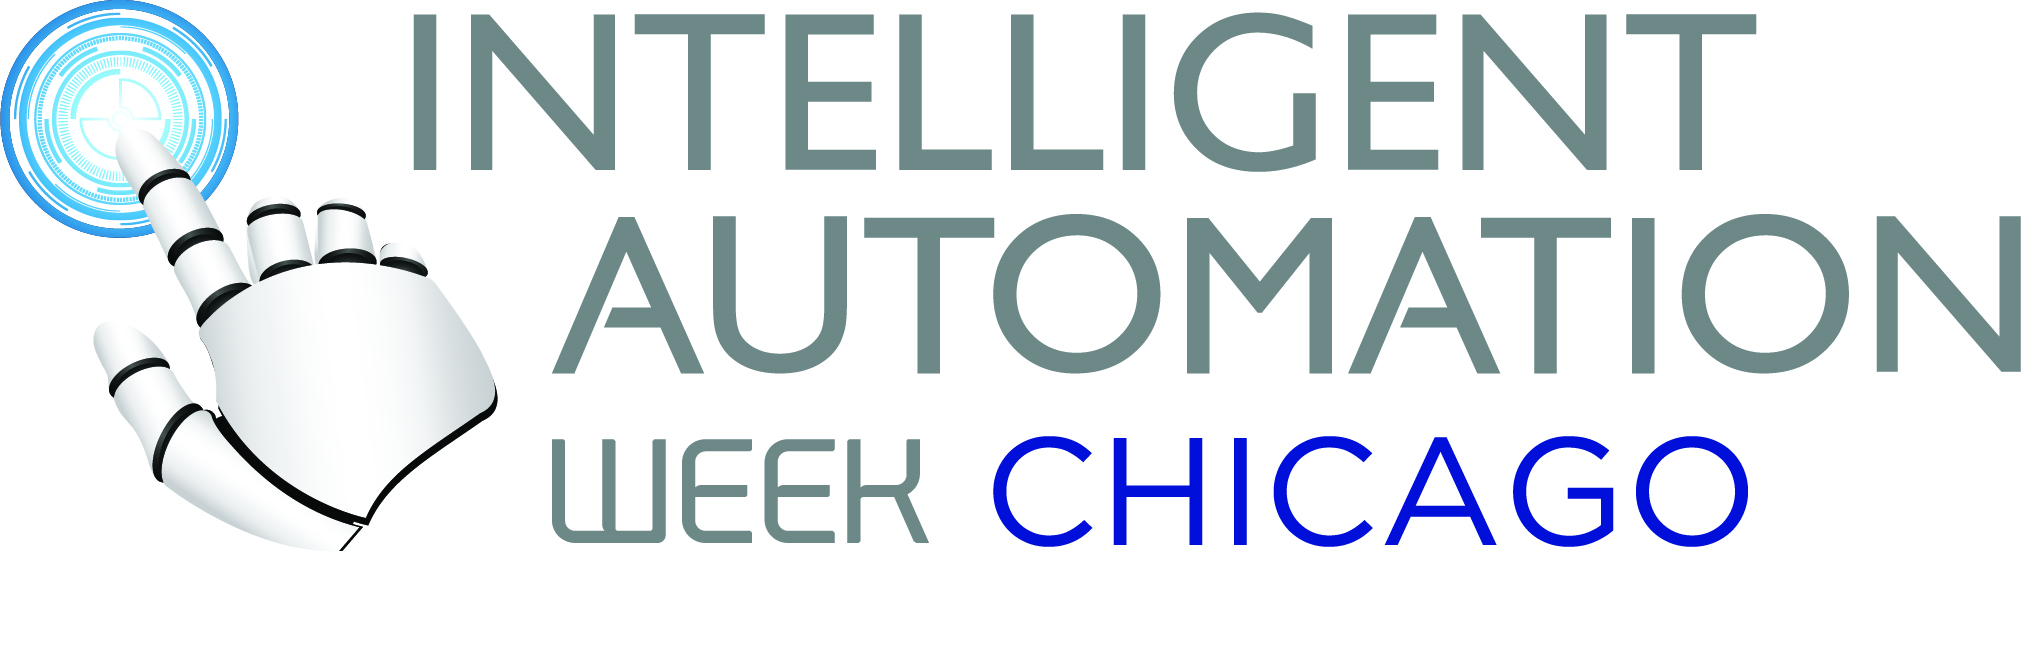 IntelligenceAutomation_Chicago.jpg